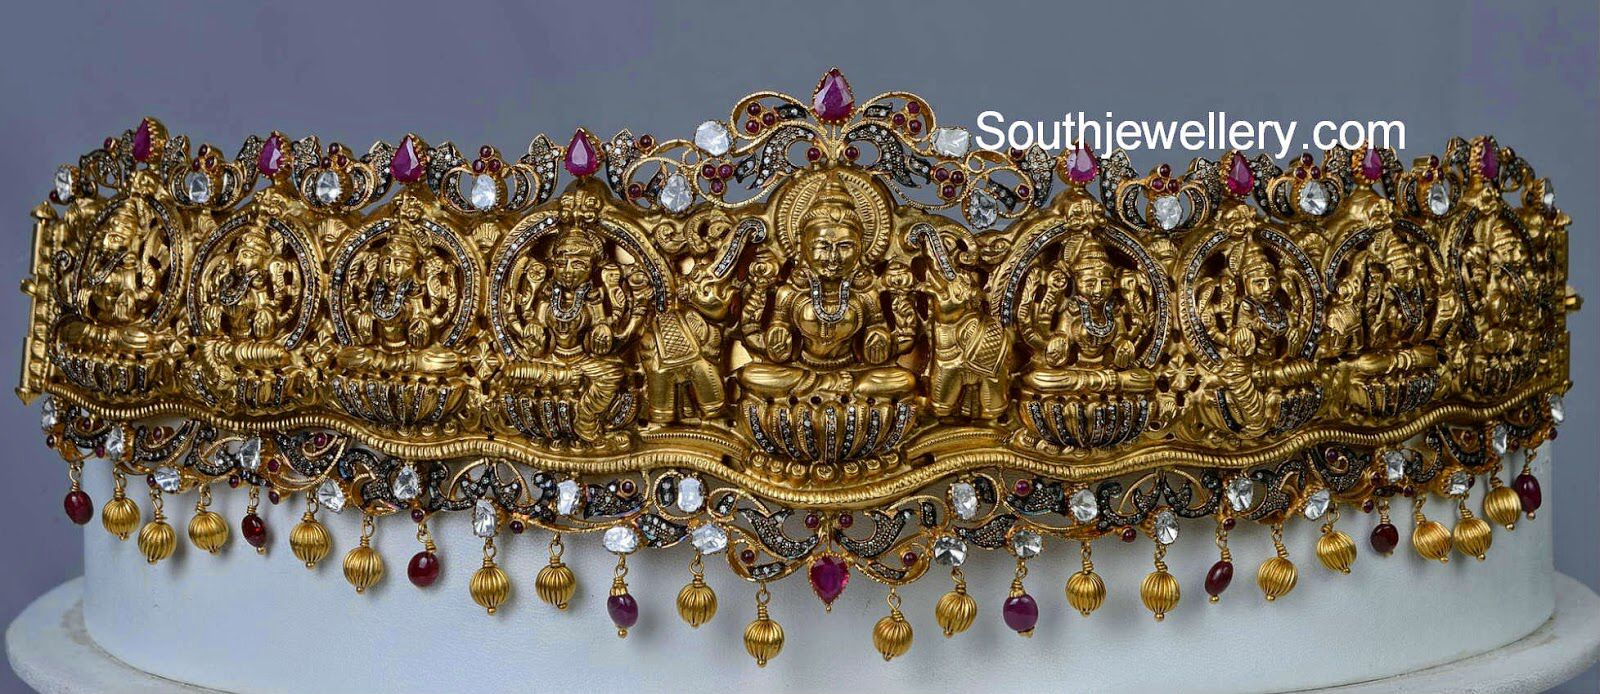 Gold vaddanam oddiyanam kammarpatta waisbelt designs south indian - Vaddanam Latest Jewelry Designs Page 14 Of 29 Jewellery Designs